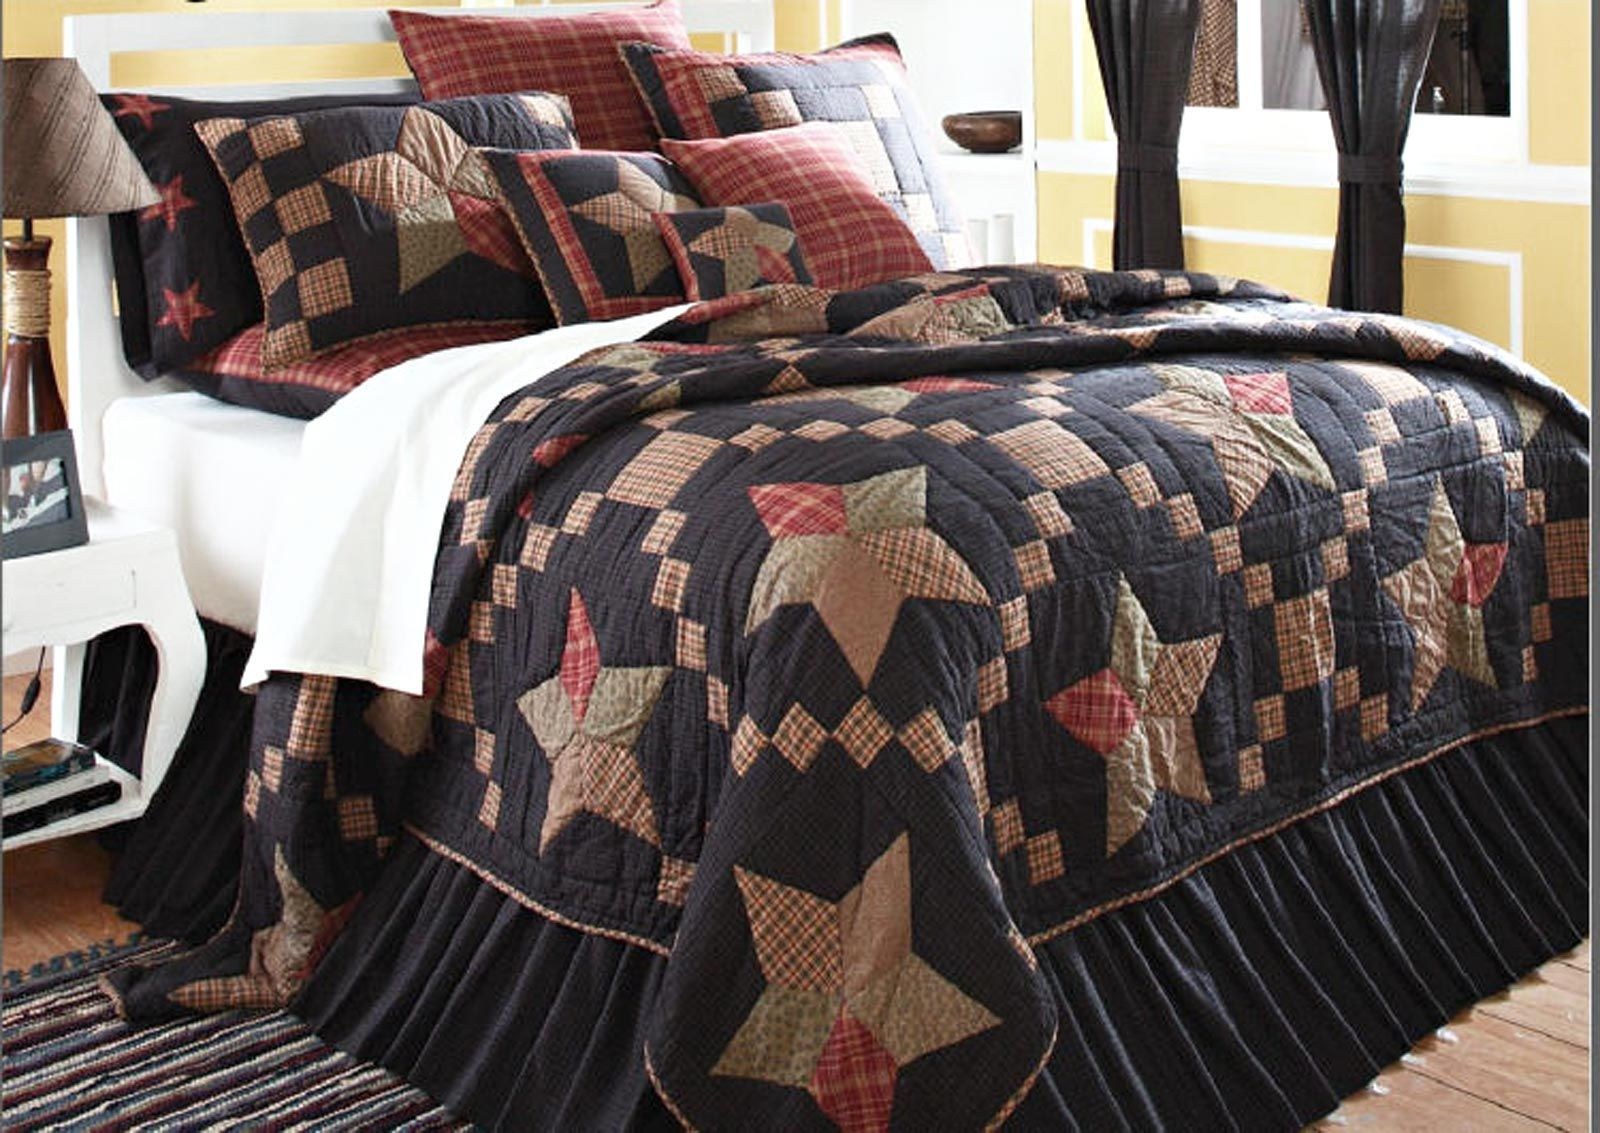 Country+Patchwork+Quilts | ... -quilt-arlington-sturbridge ... : country star quilt - Adamdwight.com